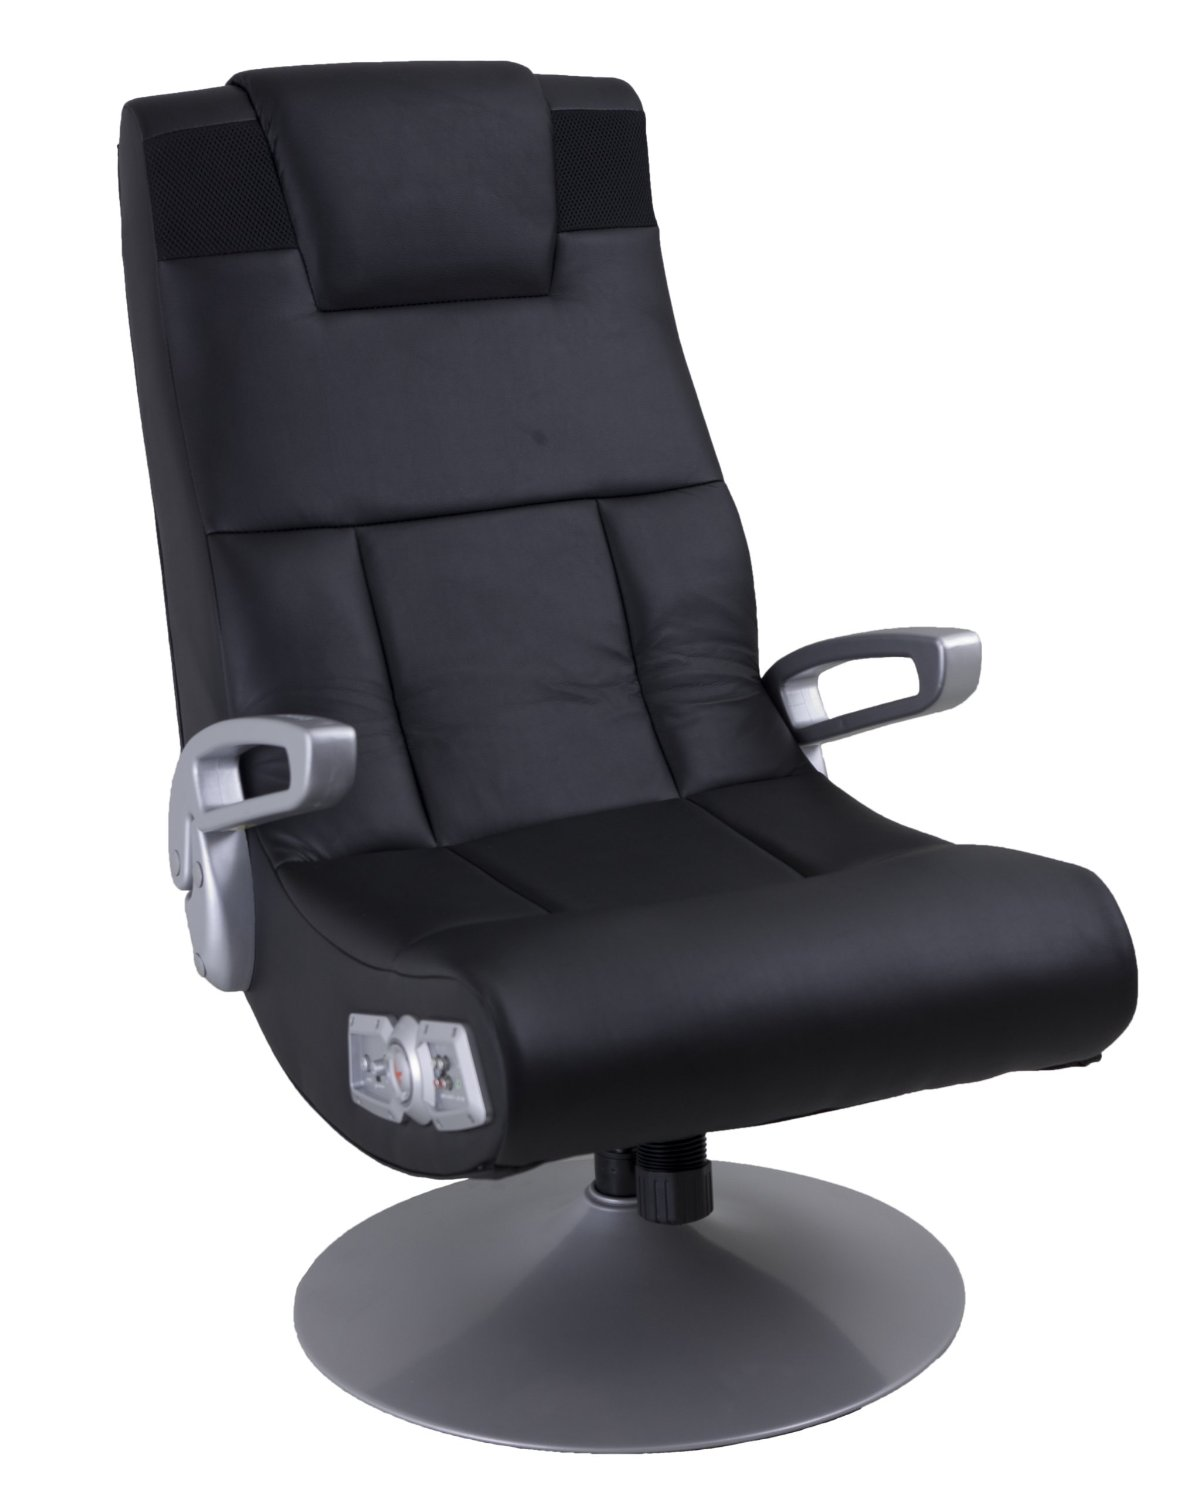 Gaming Chair With Speakers 5 Video Gaming Chairs For Racing Accessories Lists